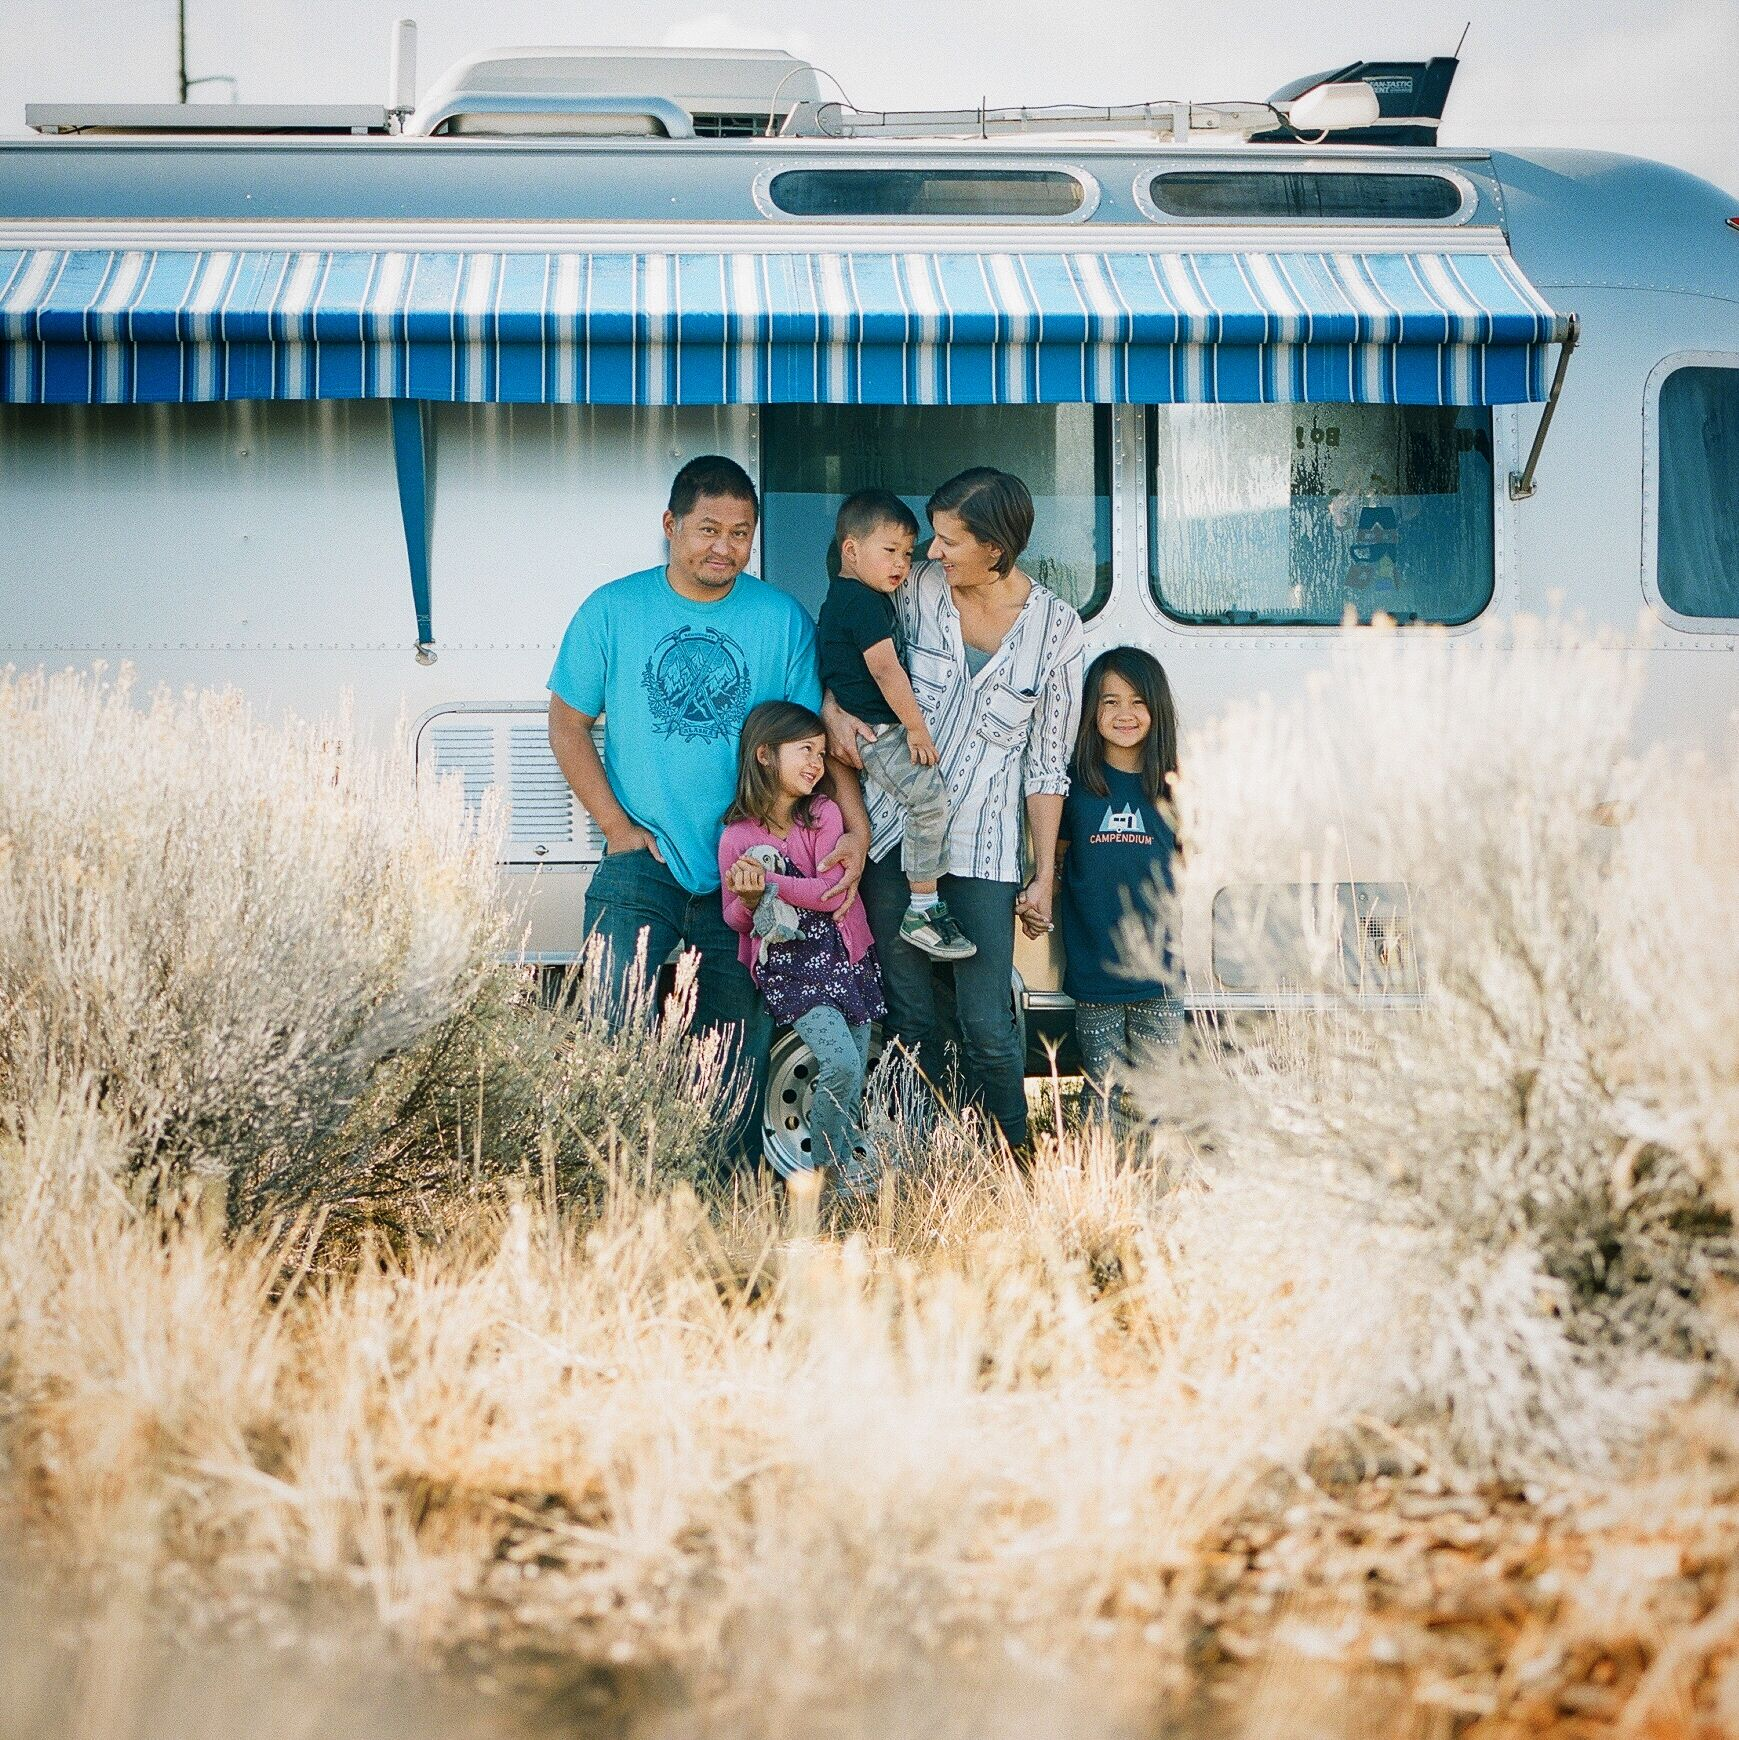 We didn't start traveling until AFTER we had kids. And what started as an extended RV trip with one kid... turned into 12 years on the road fulltime with three kids and a cat in tow. We share our story here.                                       (Photo by Catherine Abegg) #airstream #camper #camping #boondocking #rv #travel #kids #vanlife #fwc #castita #livesmall #tinyhouse #fulltime #family #europe #mexico #alaska #diversity